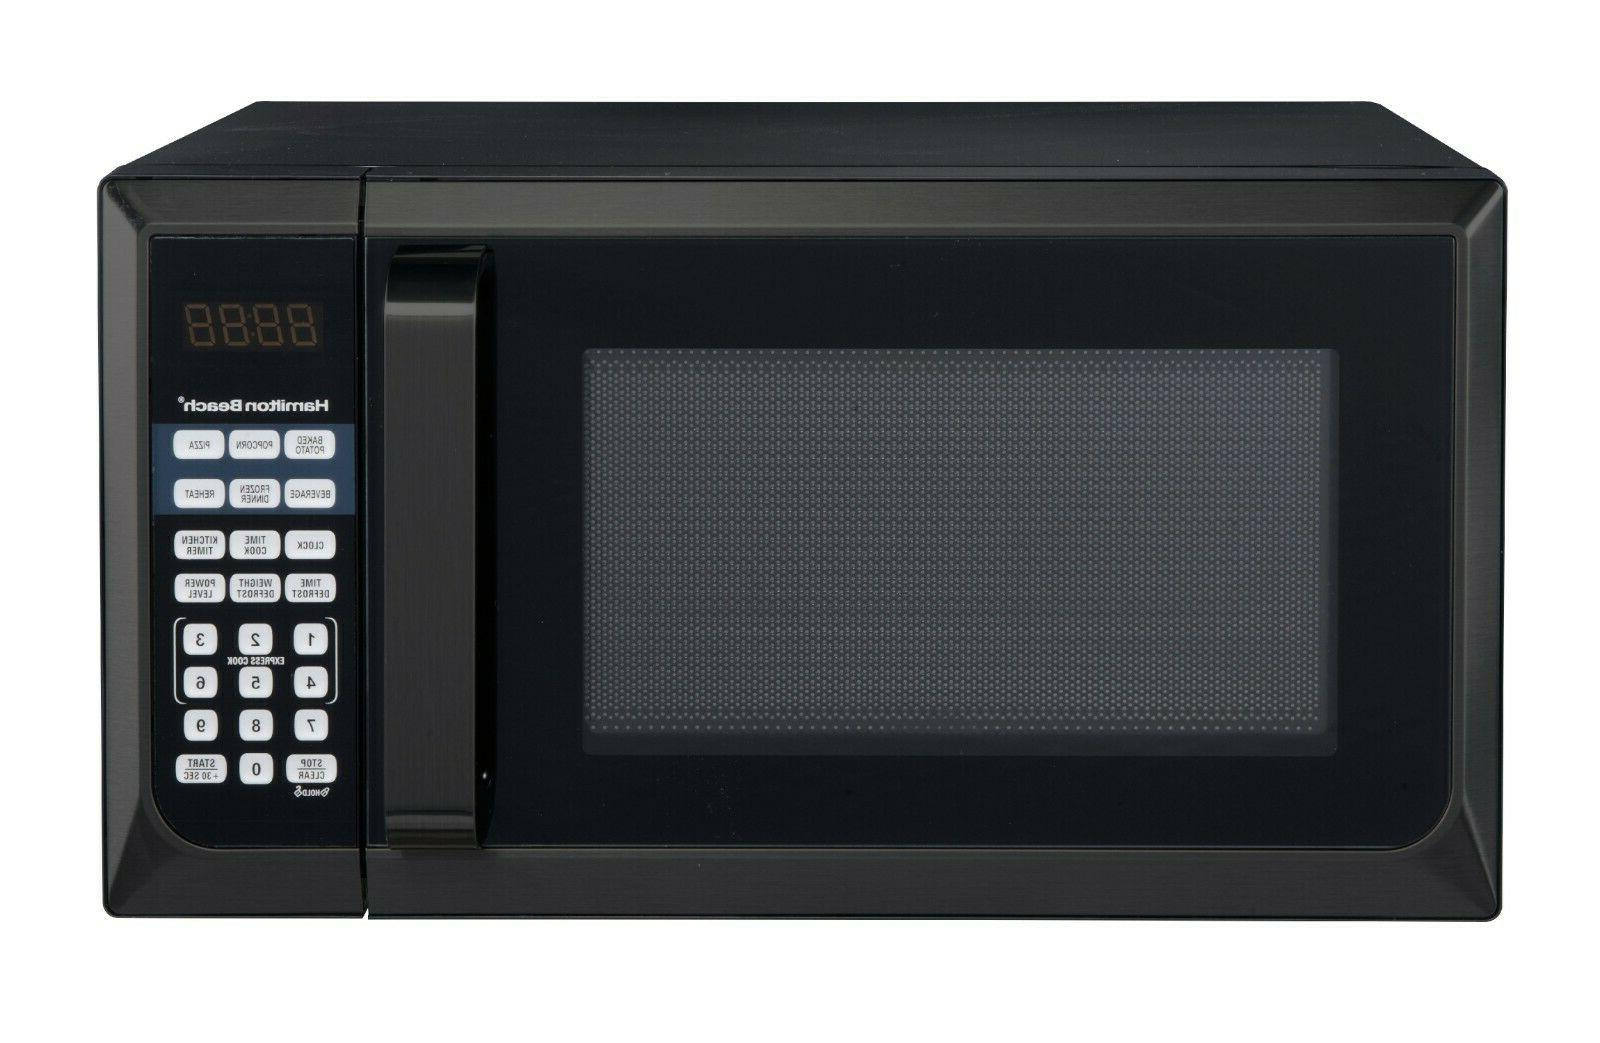 Countertop Microwave Stainless Home Office LED Oven 900W Cu BLACK